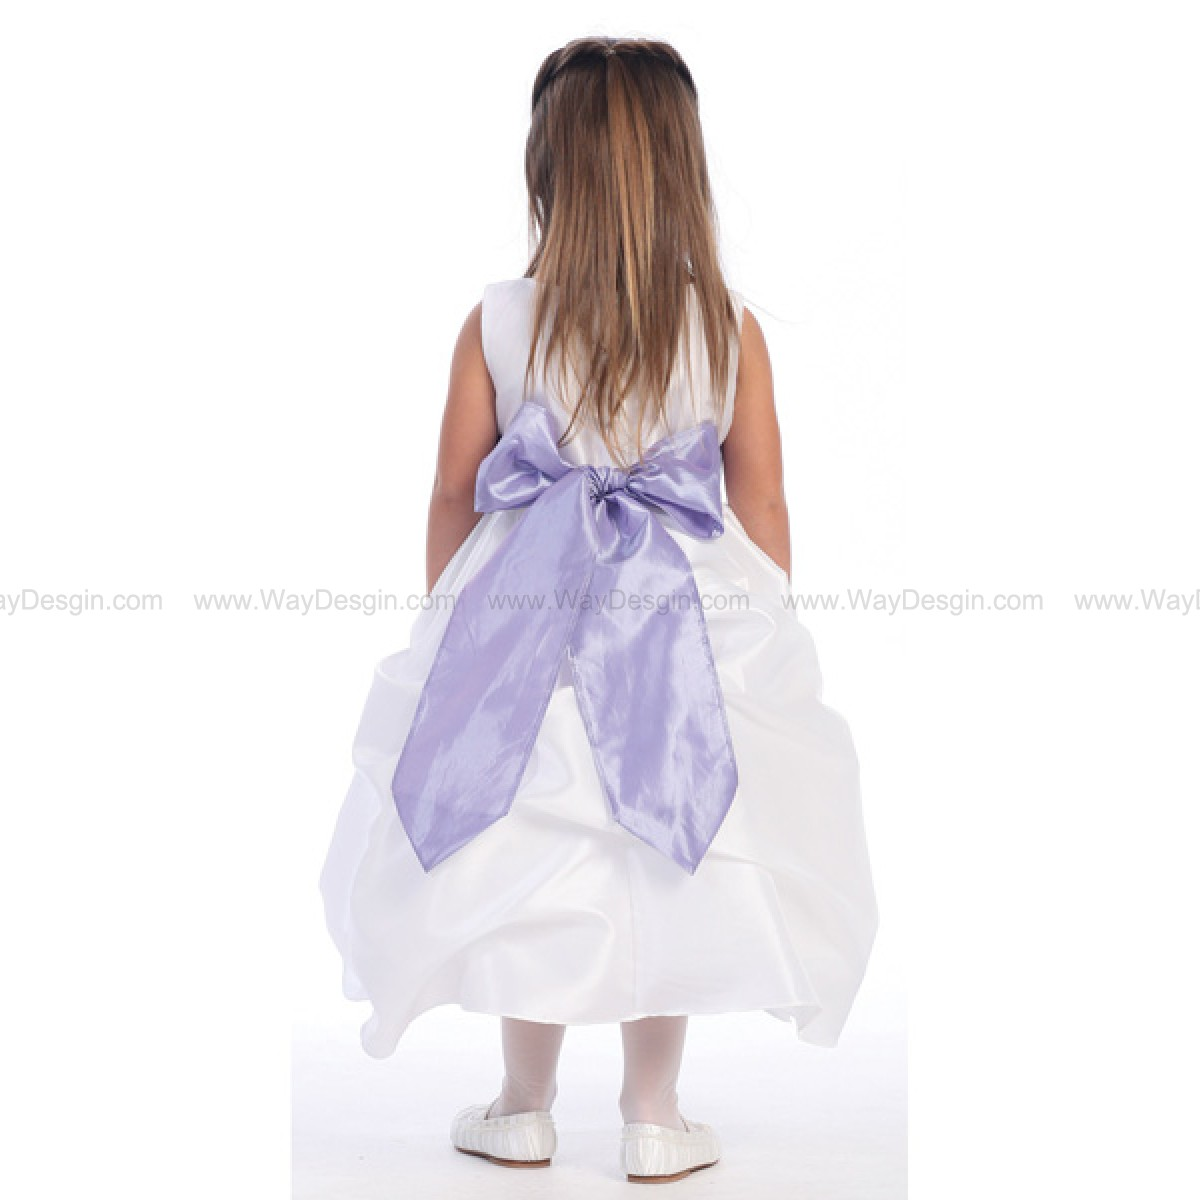 Blossom White Sleeveless Gathered Taffeta Dress Detachable Sash